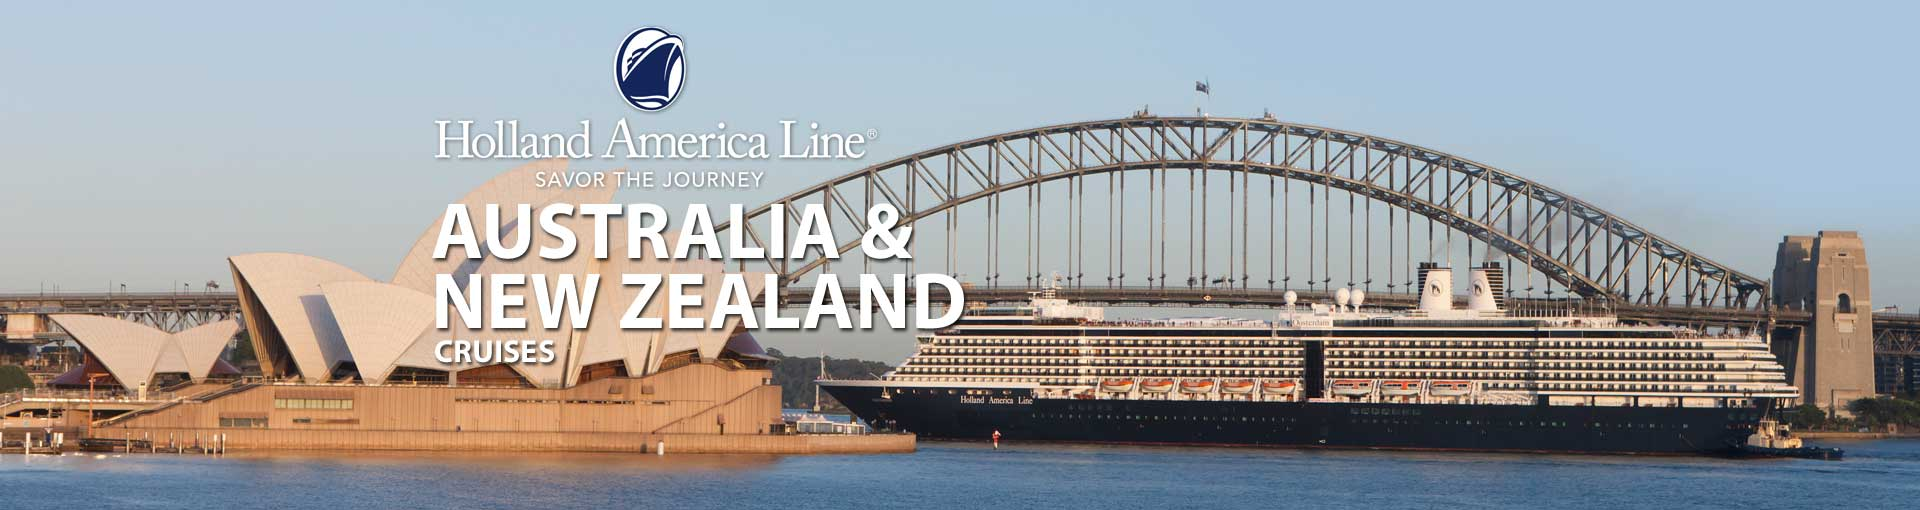 Holland America Australia New Zealand Cruises